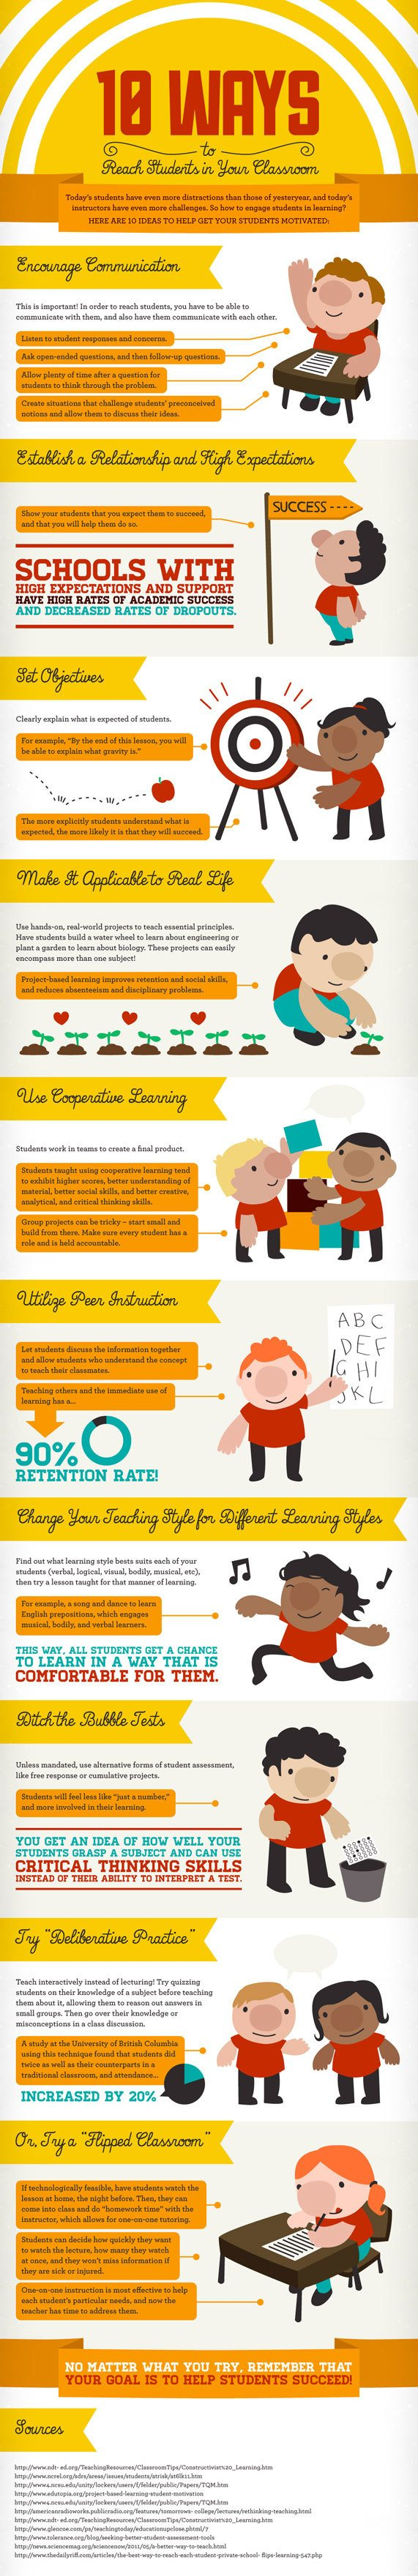 How to Motivate Your Students in the Classroom Infographic